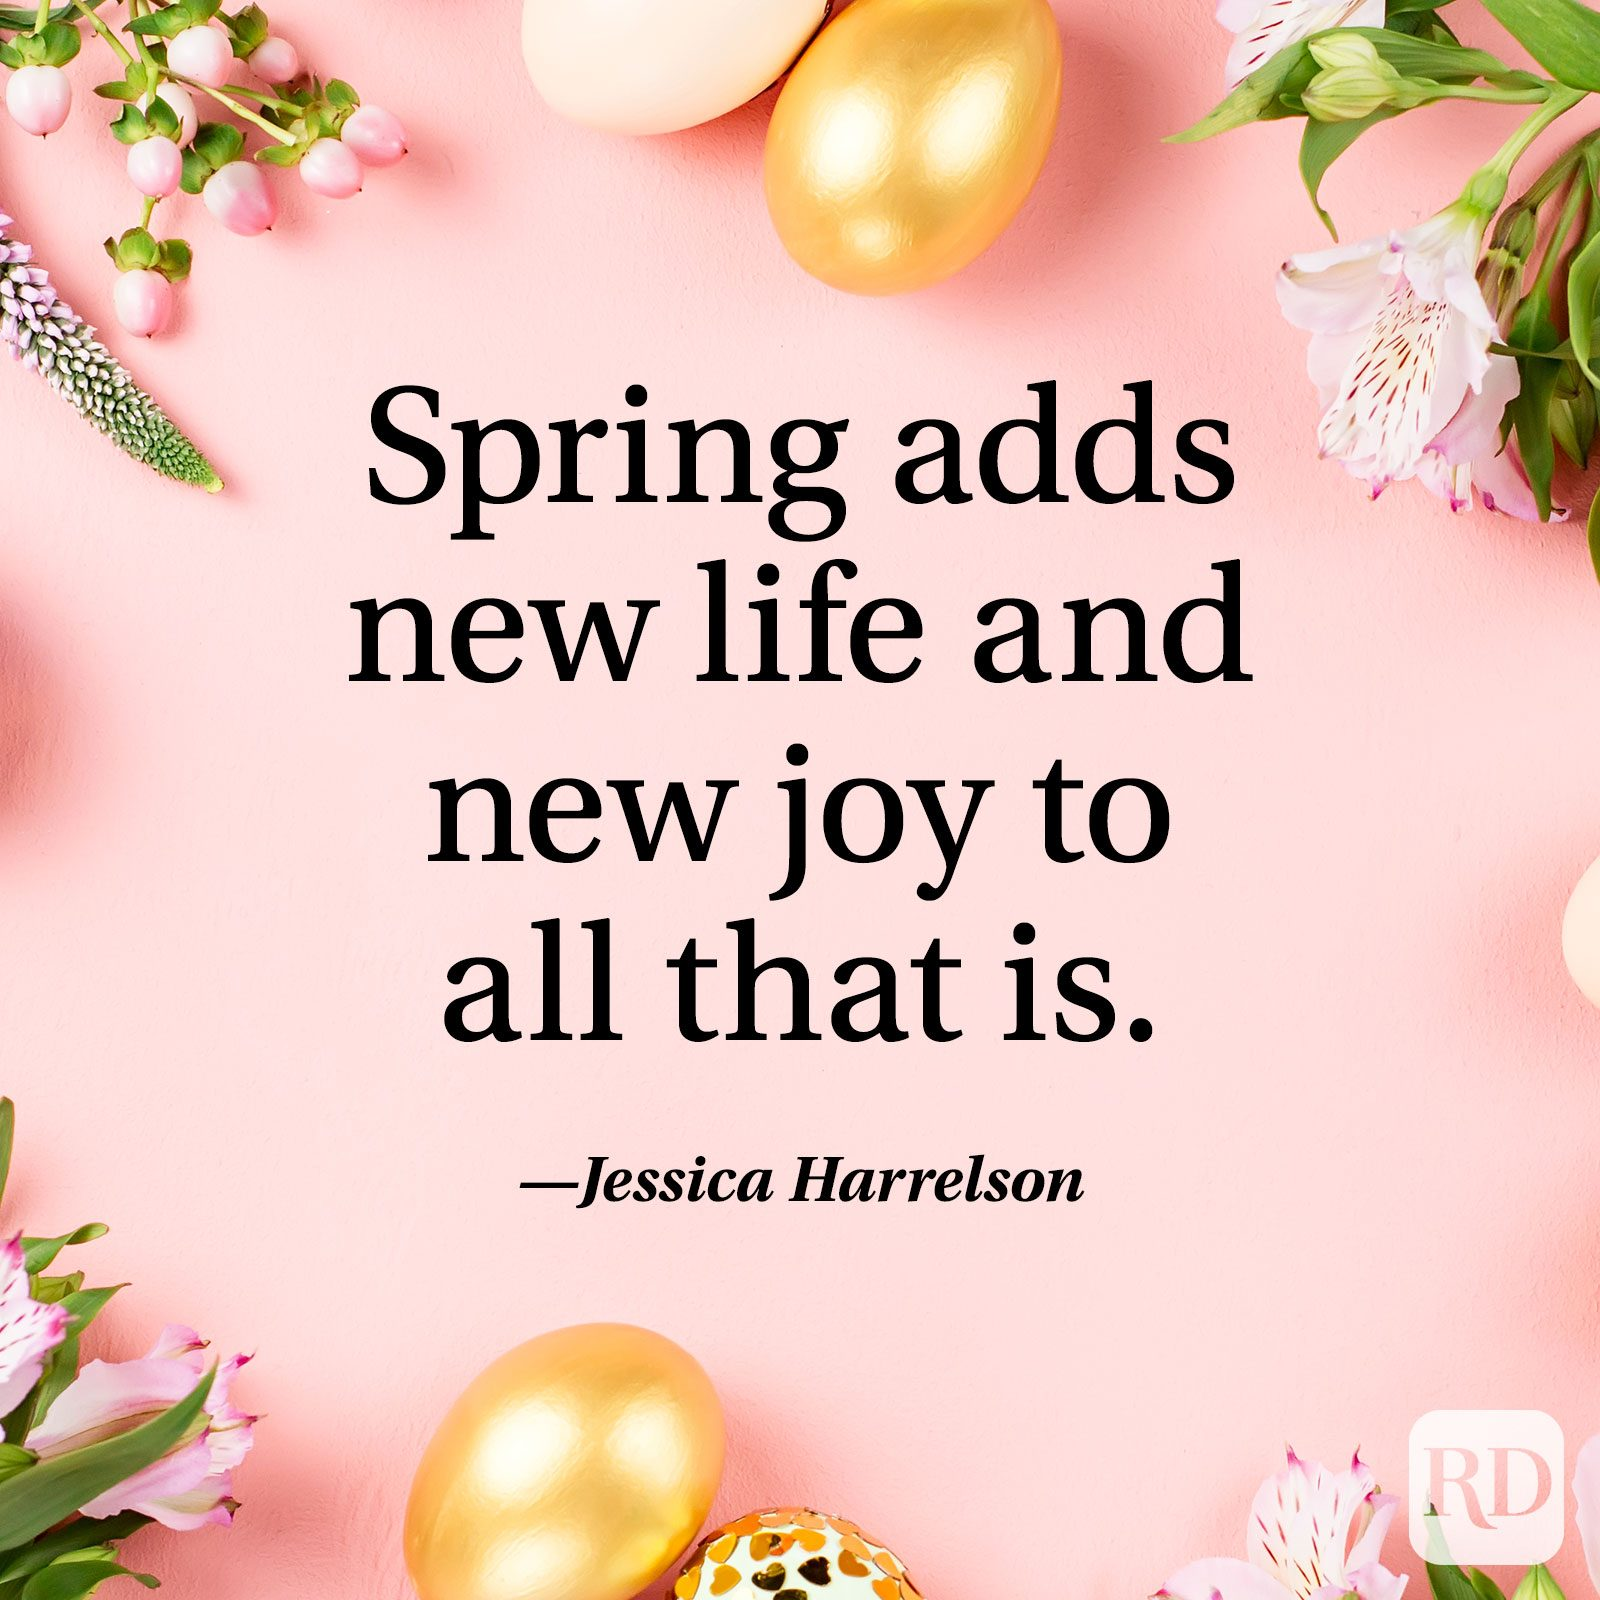 """Spring adds new life and new joy to all that is."" — Jessica Harrelson"